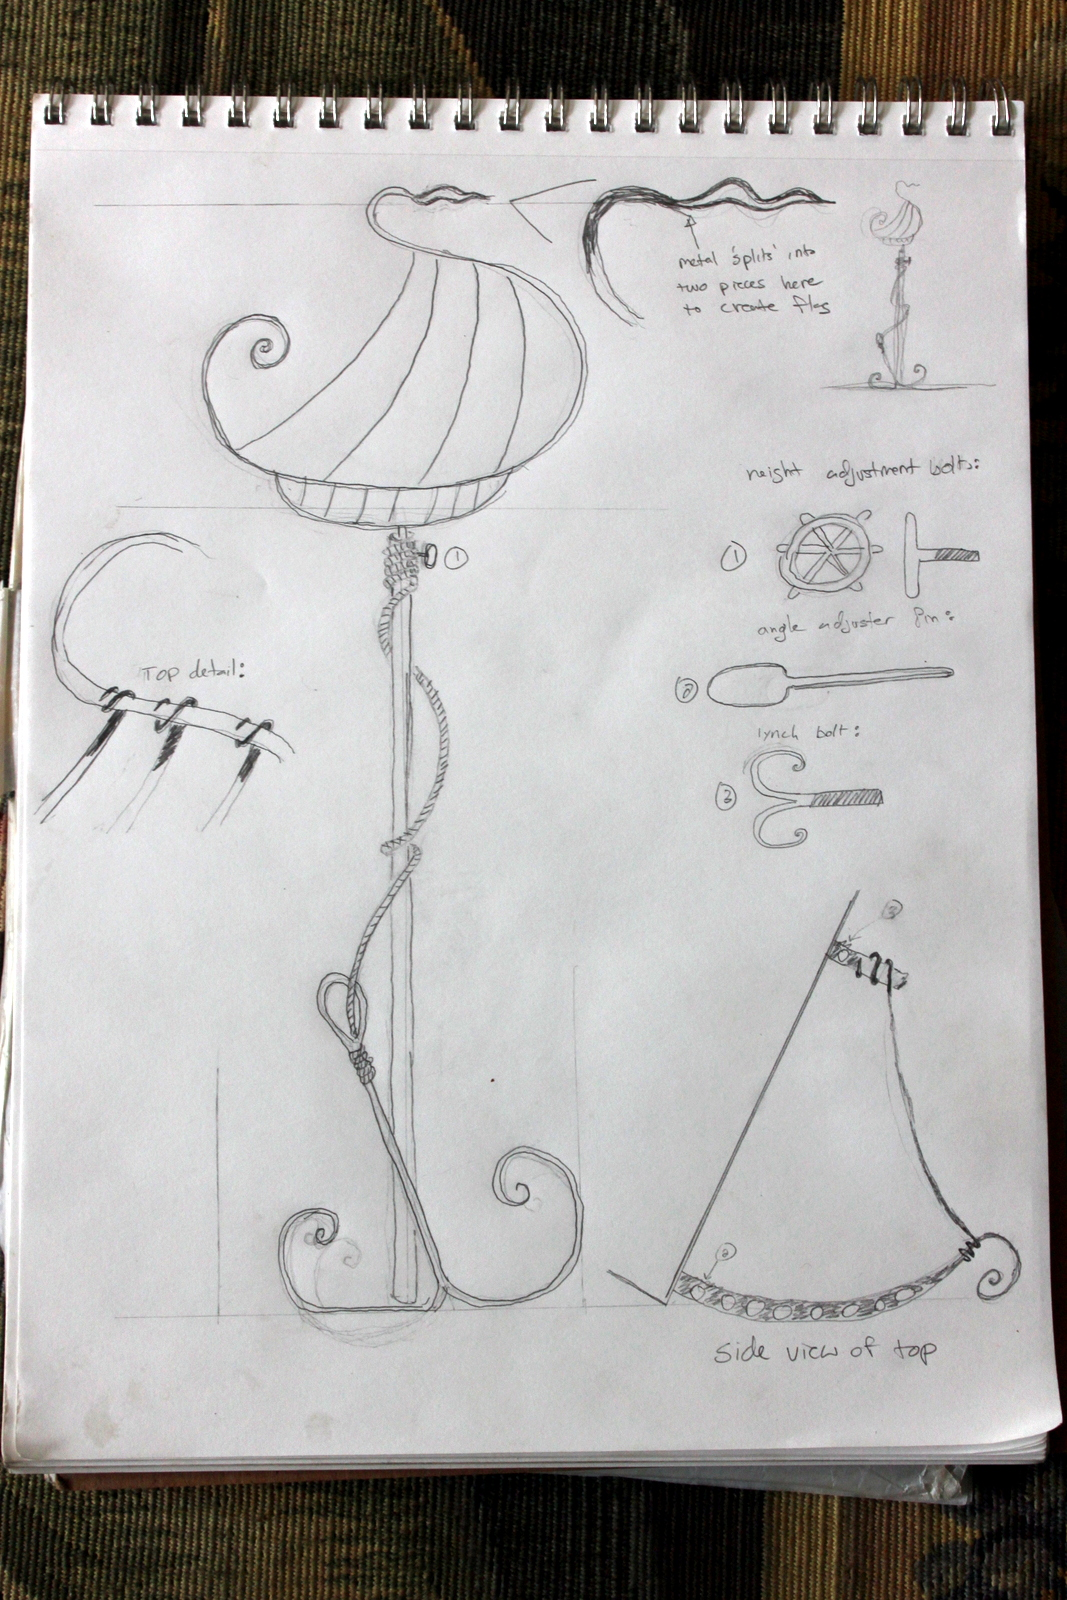 The completed design